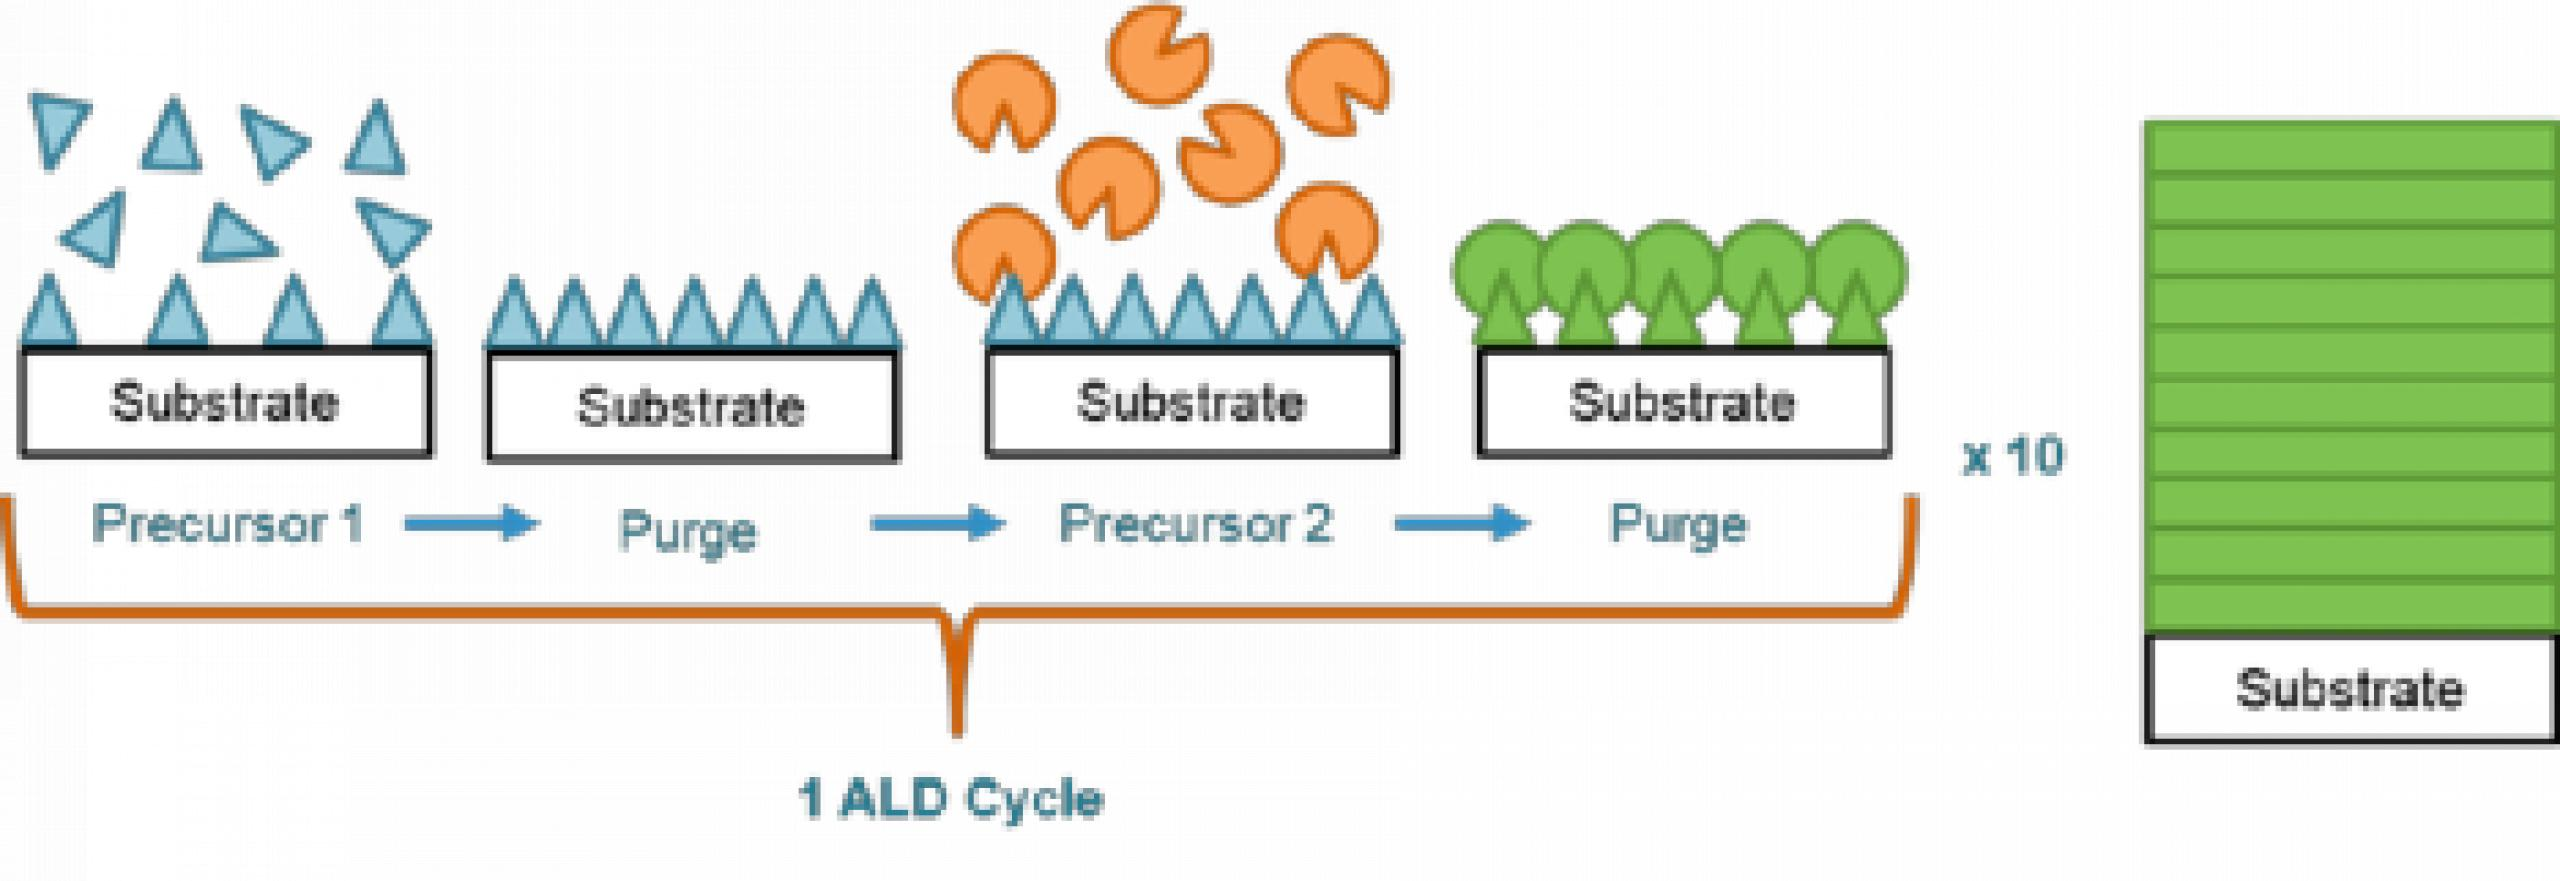 A graphical schematic of the ALD operation principle enabling layer-by-layer control of coatings and filter characteristics on the detector.